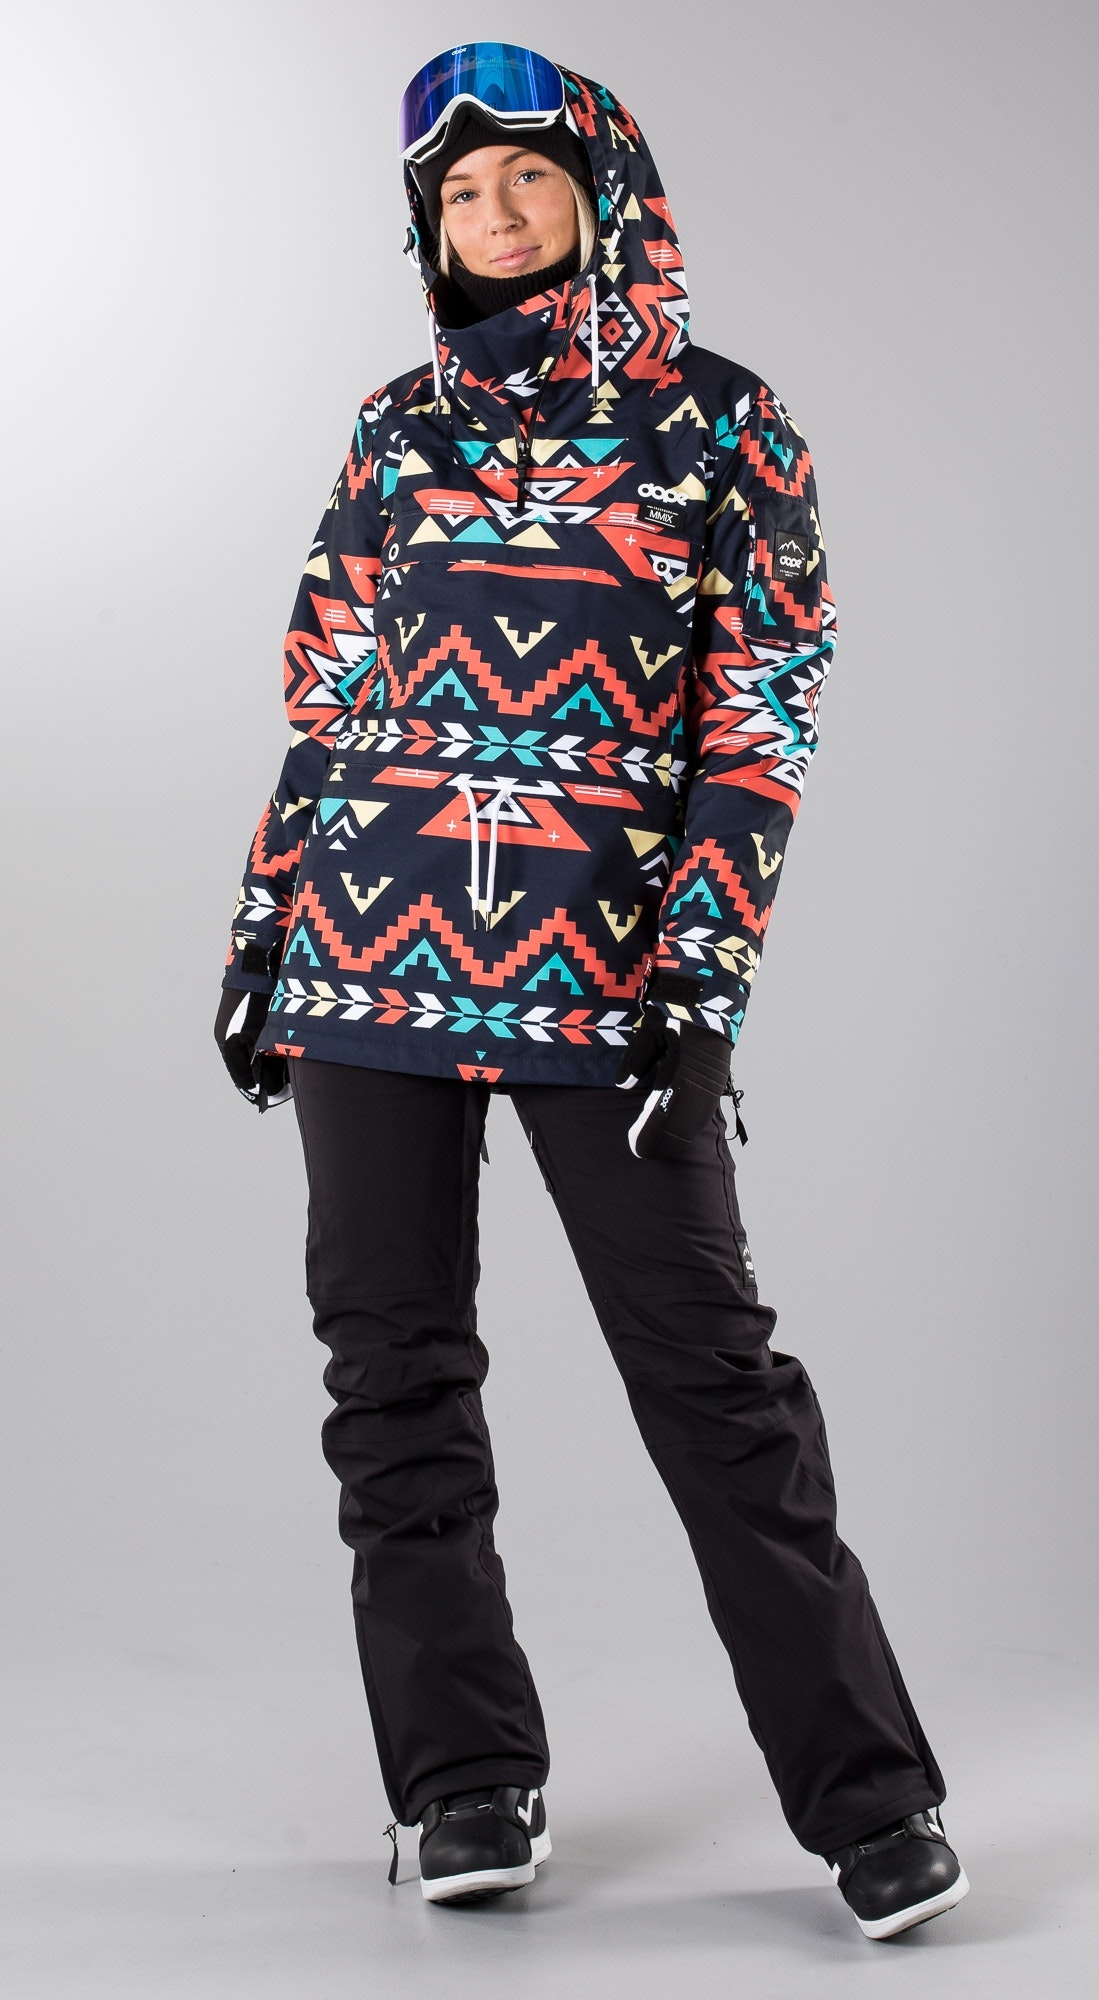 Women S Snowboard Clothing Fast Free Delivery Ridestore